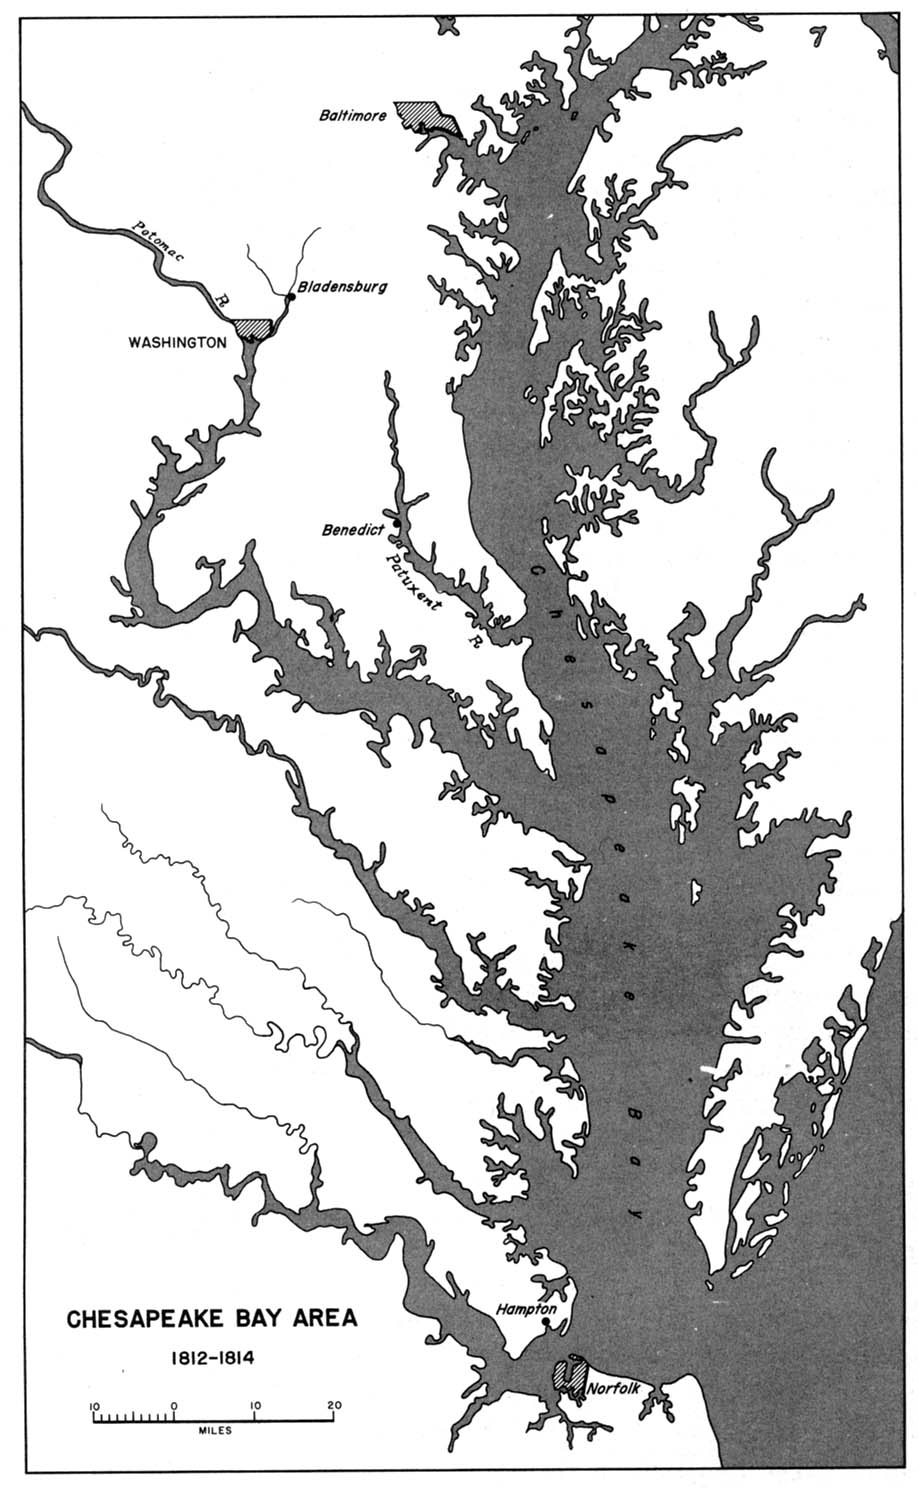 Chesapeake Bay Topographic Map.1up Travel Historical Maps Of United States 1812 1814 Chesapeake